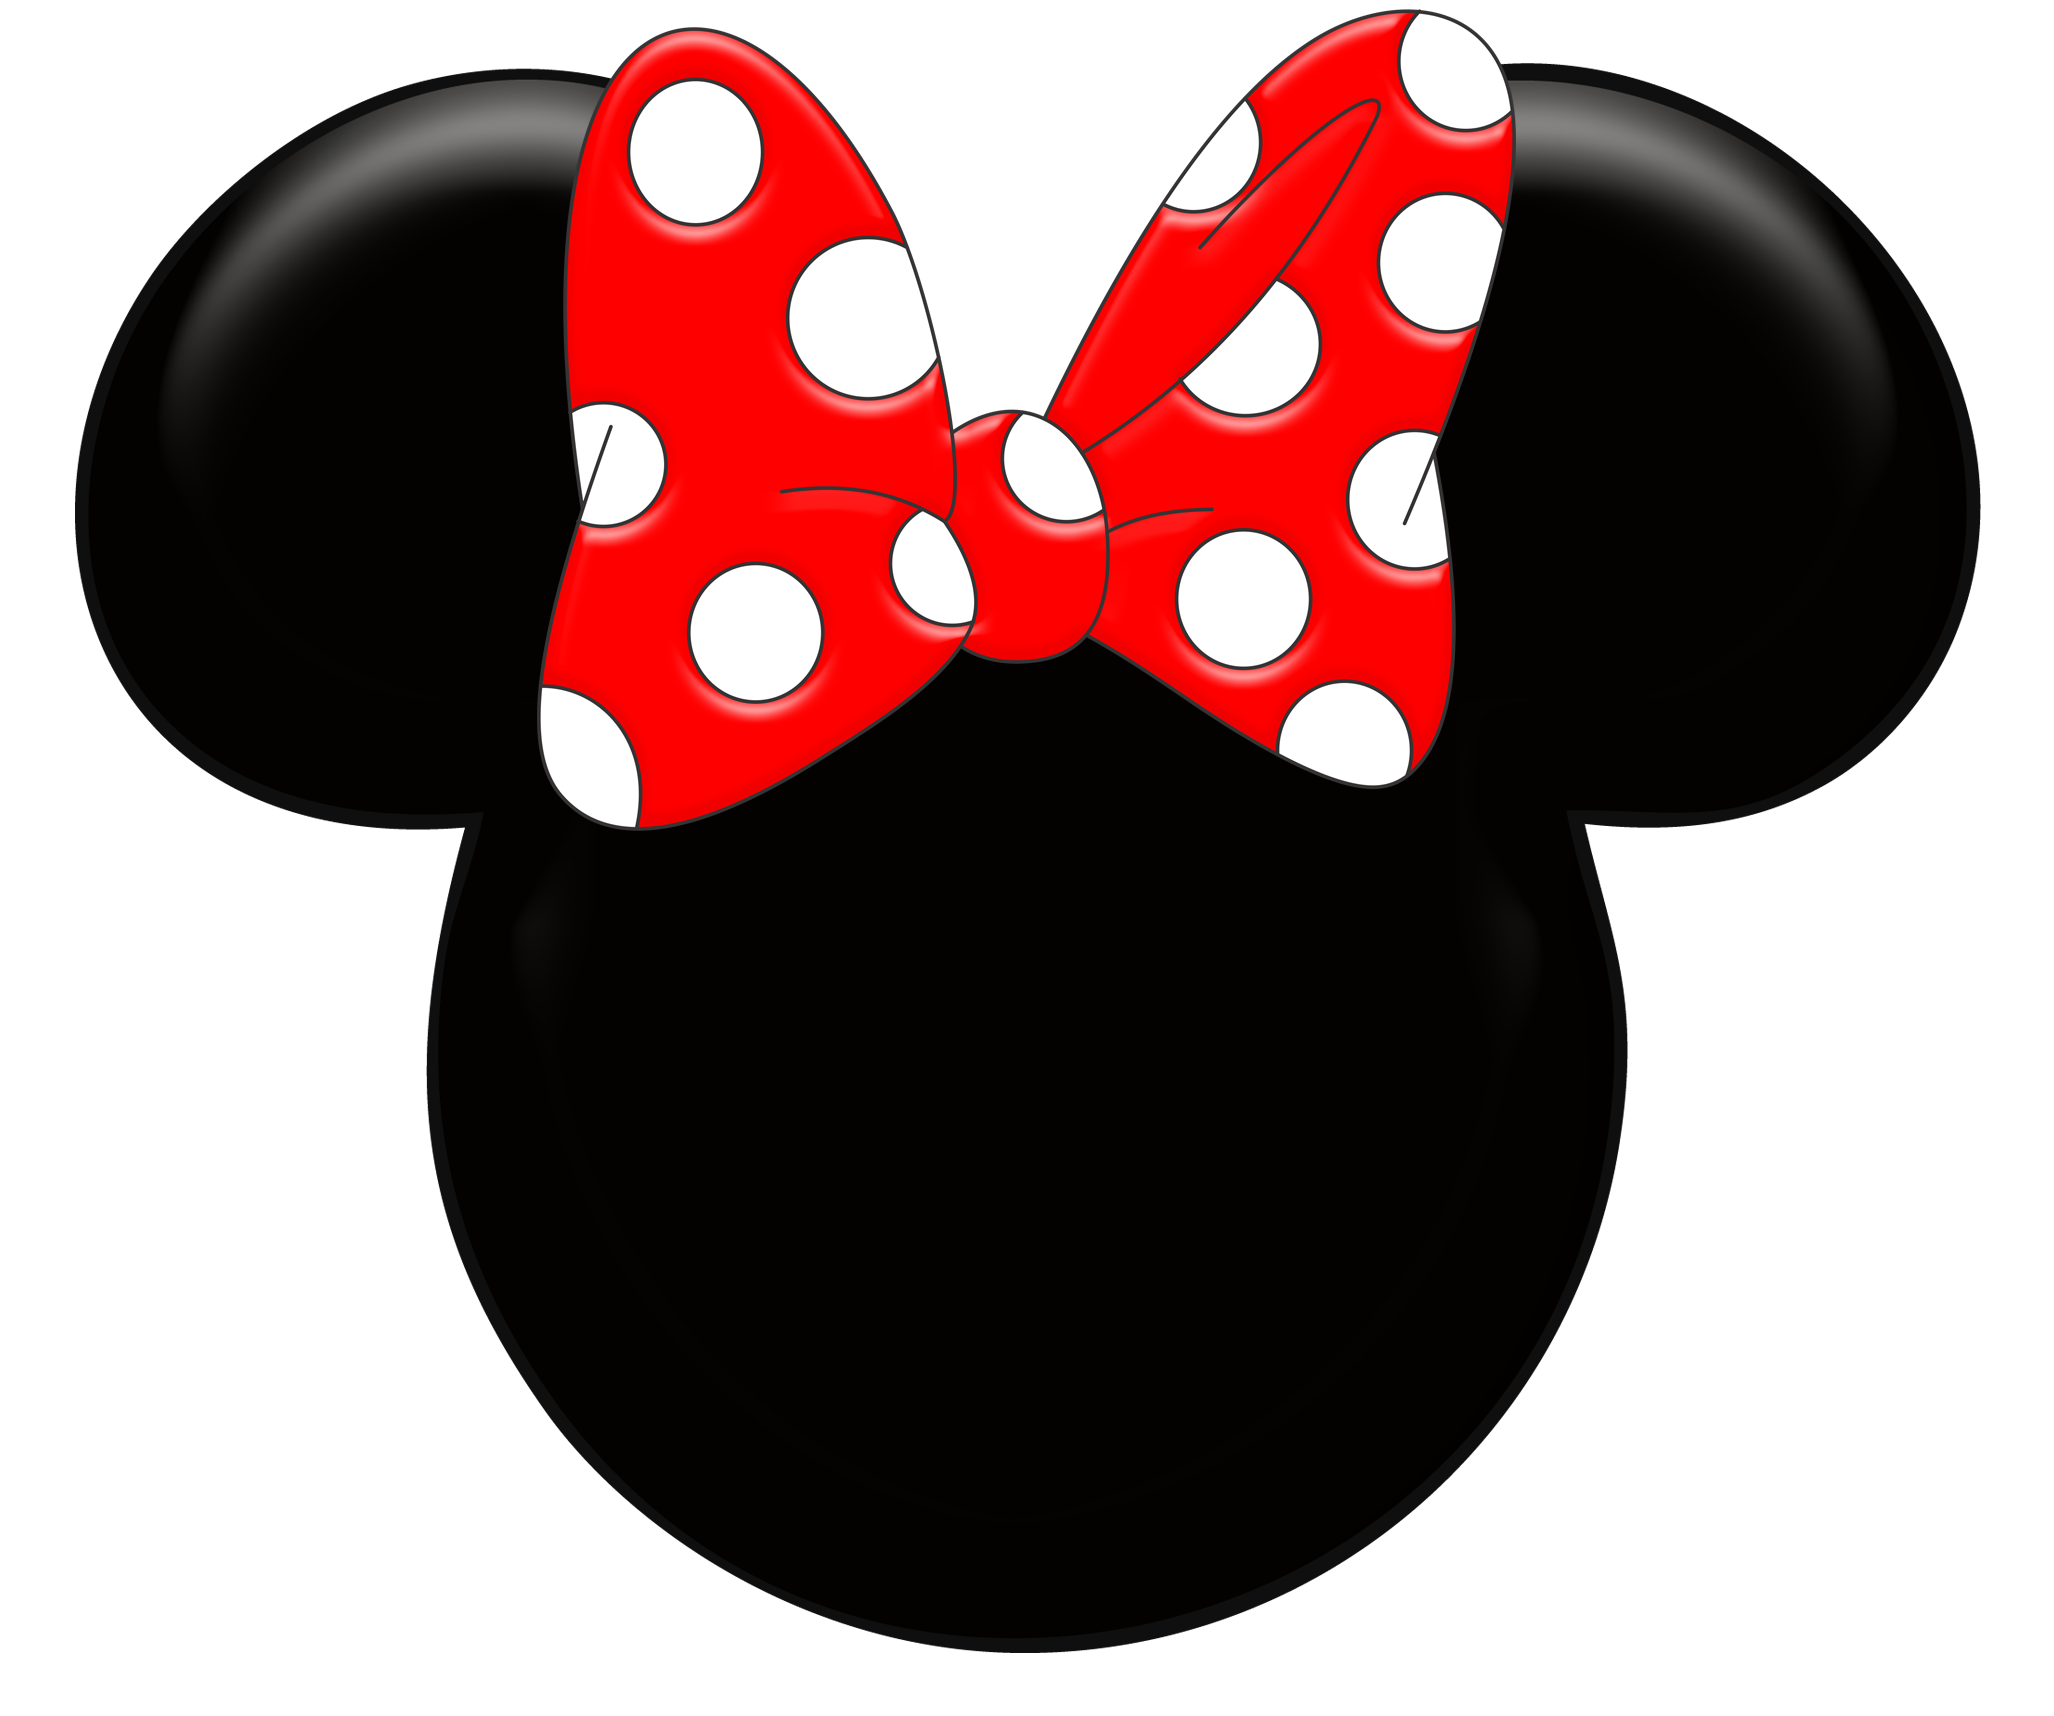 Red Minnie Mouse Wallpaper.